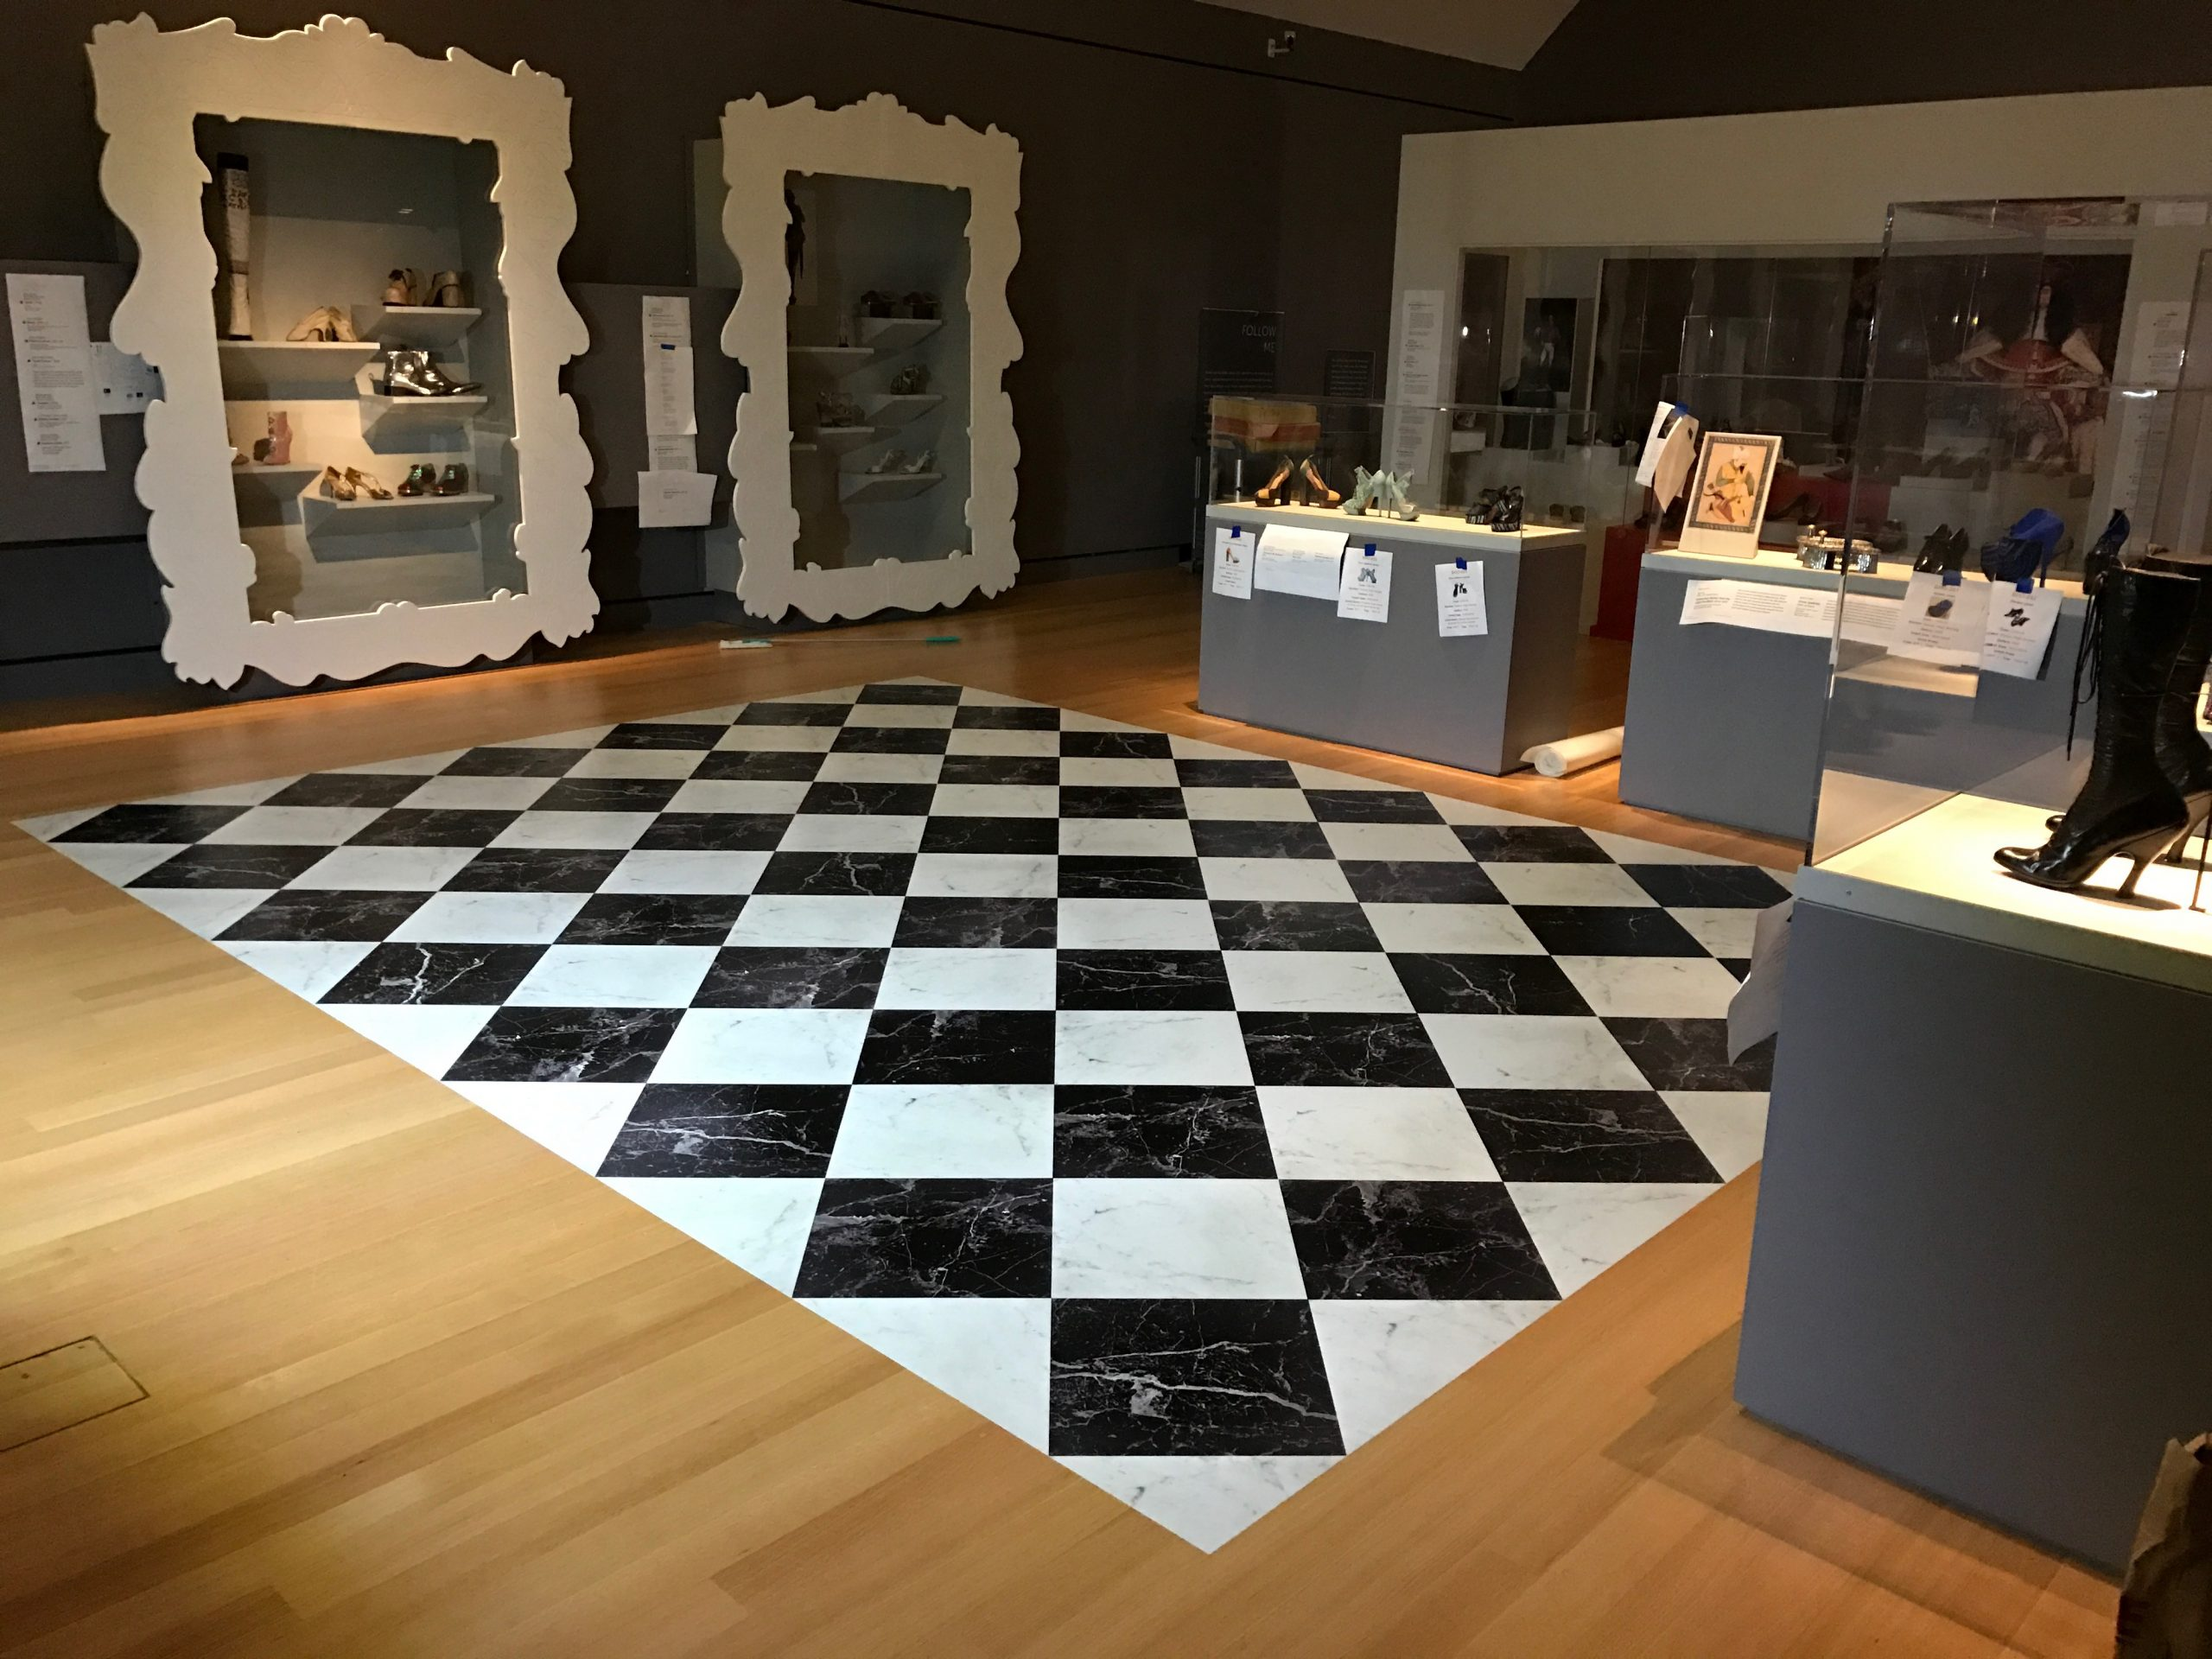 FLOOR GRAPHIC FOR HIGH-END RETAIL